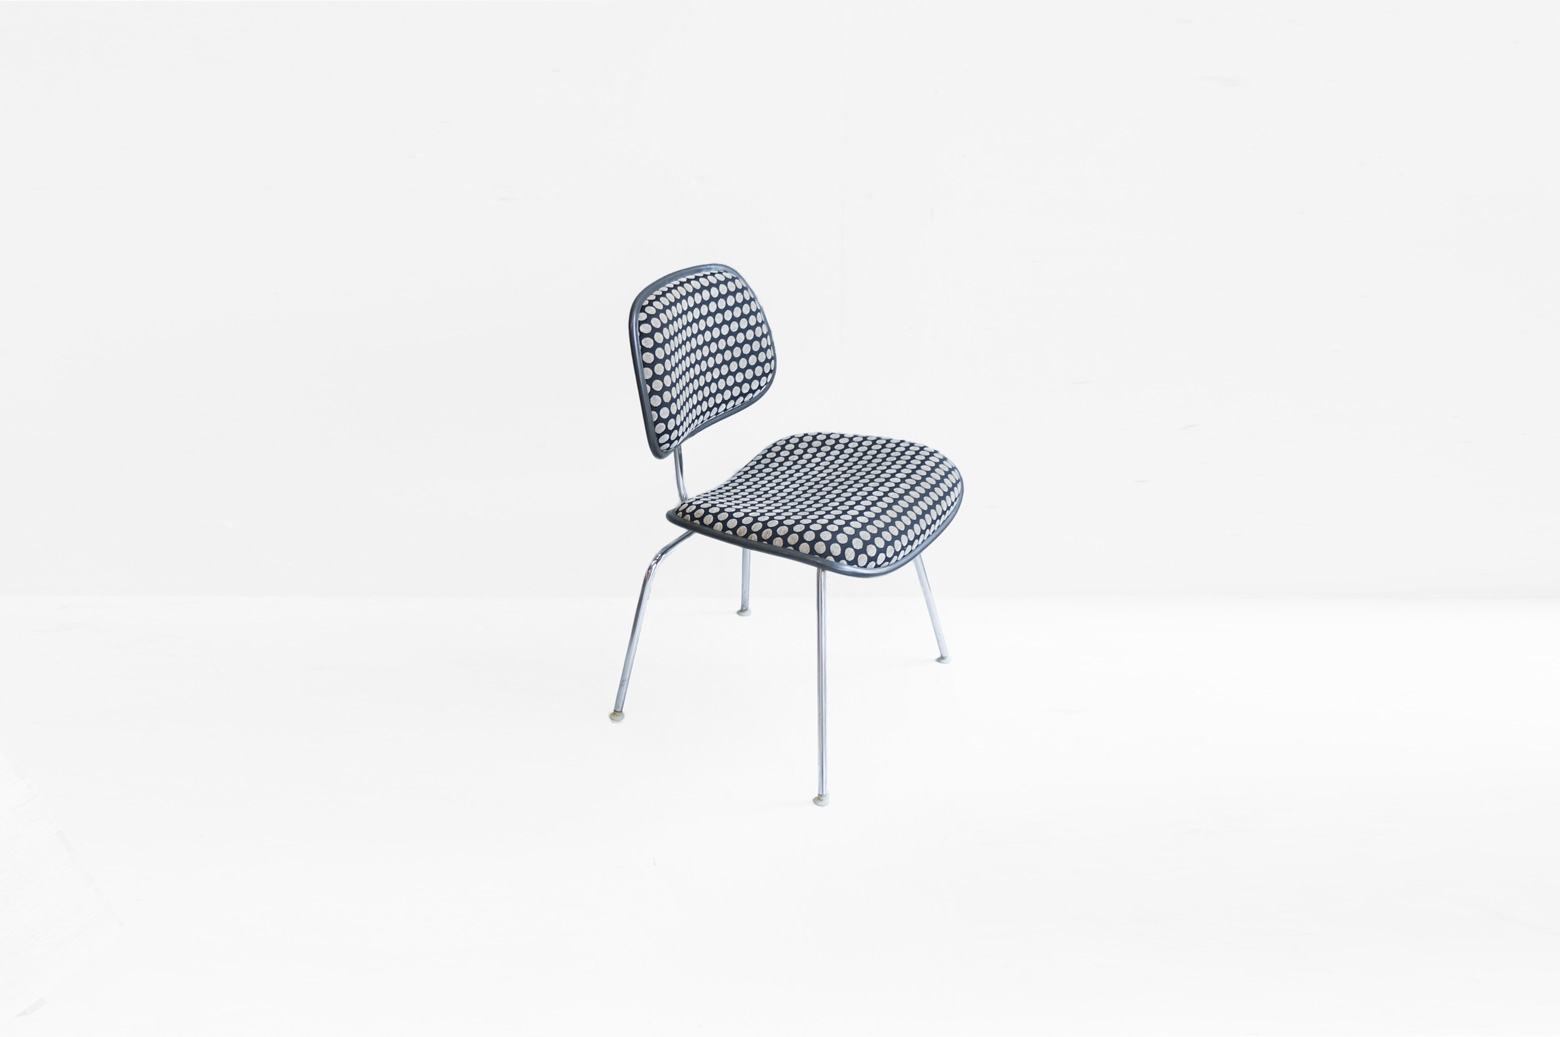 Herman Miller Vintage 2piece Plastic Chair designed by Charles & Ray Eames/ハーマンミラー ヴィンテージ 2ピースプラスチックチェア イームズデザイン